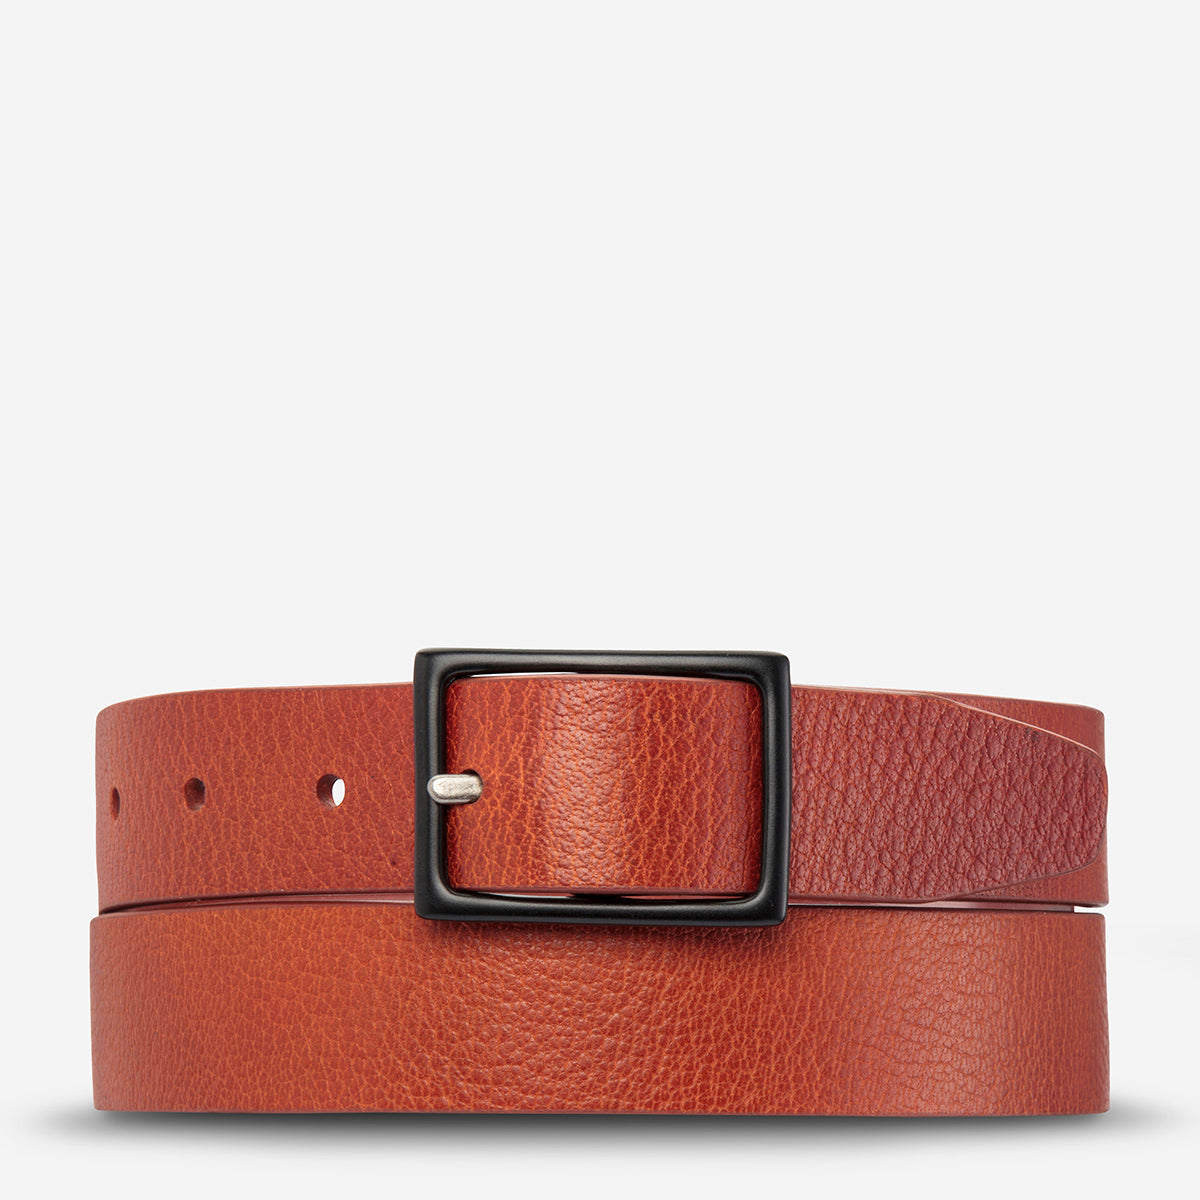 Status Anxiety Assertion Men's Leather Belt - Tan